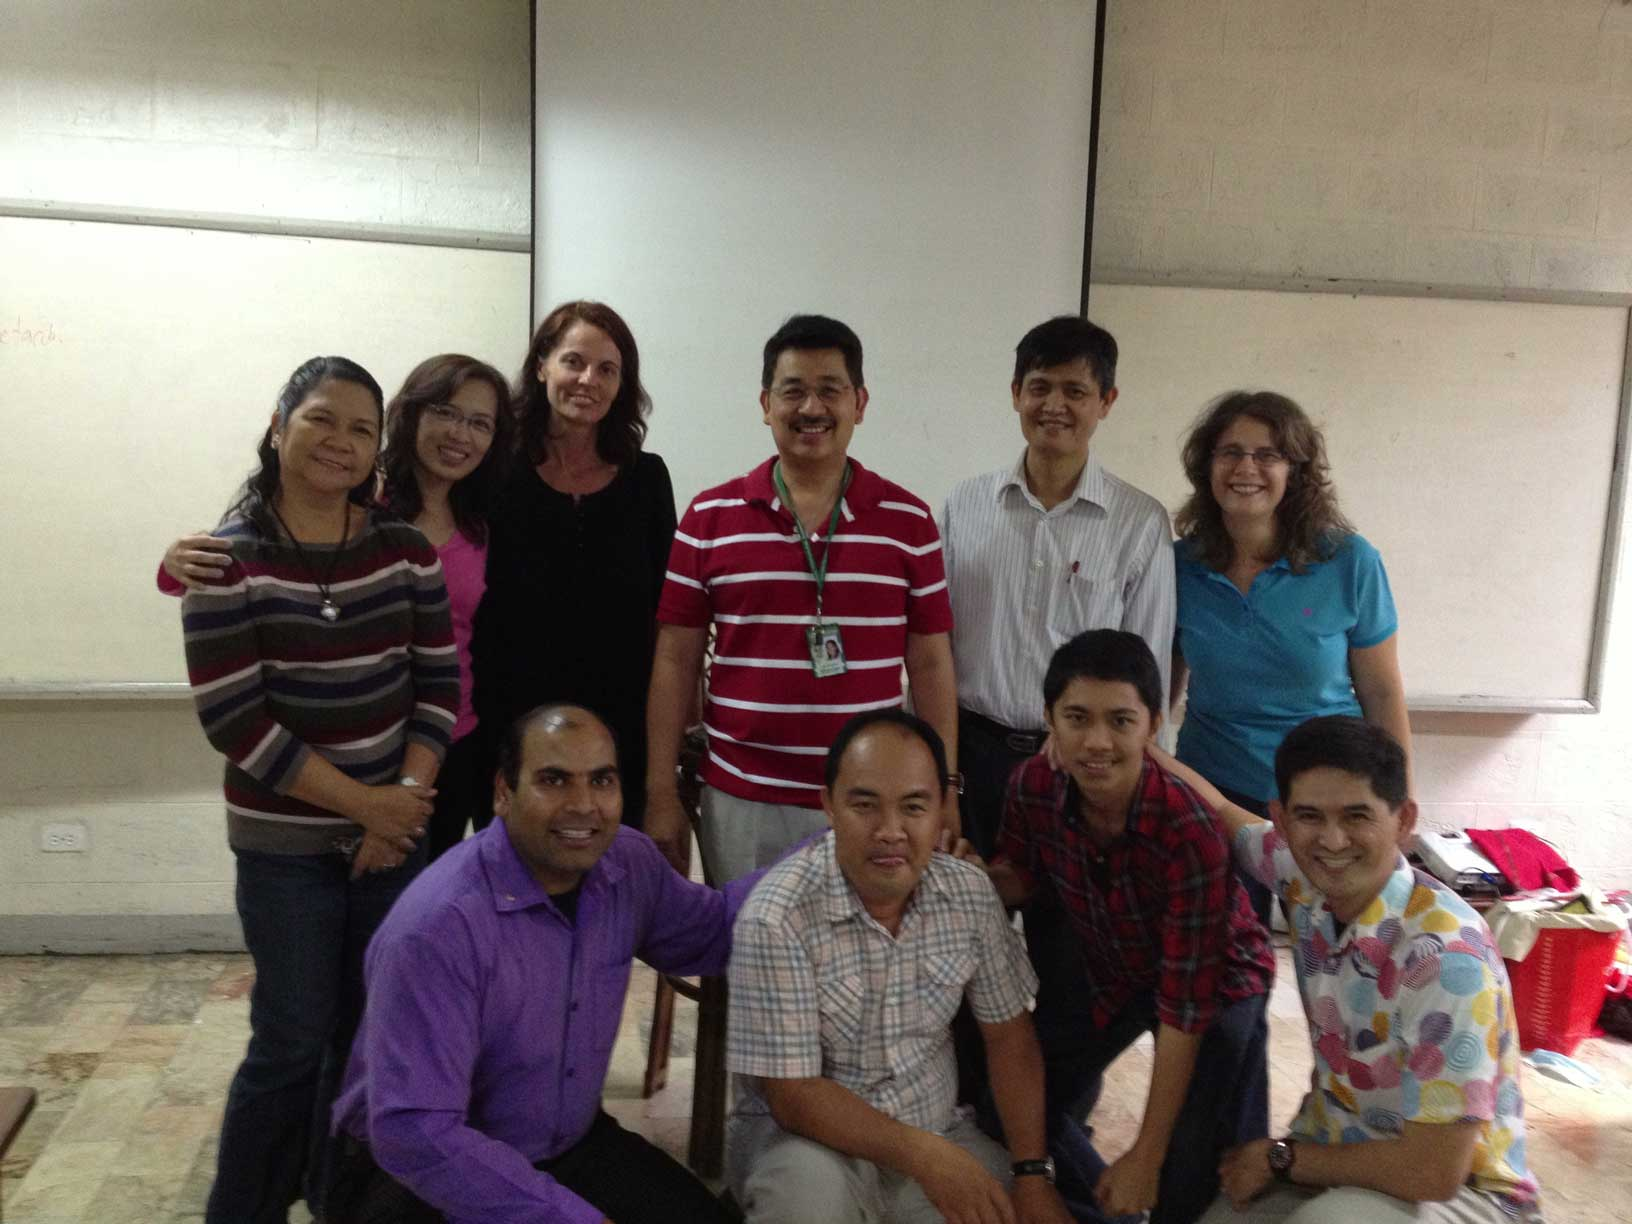 Small Group Presentations (Asian Theological Seminary Nouwen Class) - Feb. 1